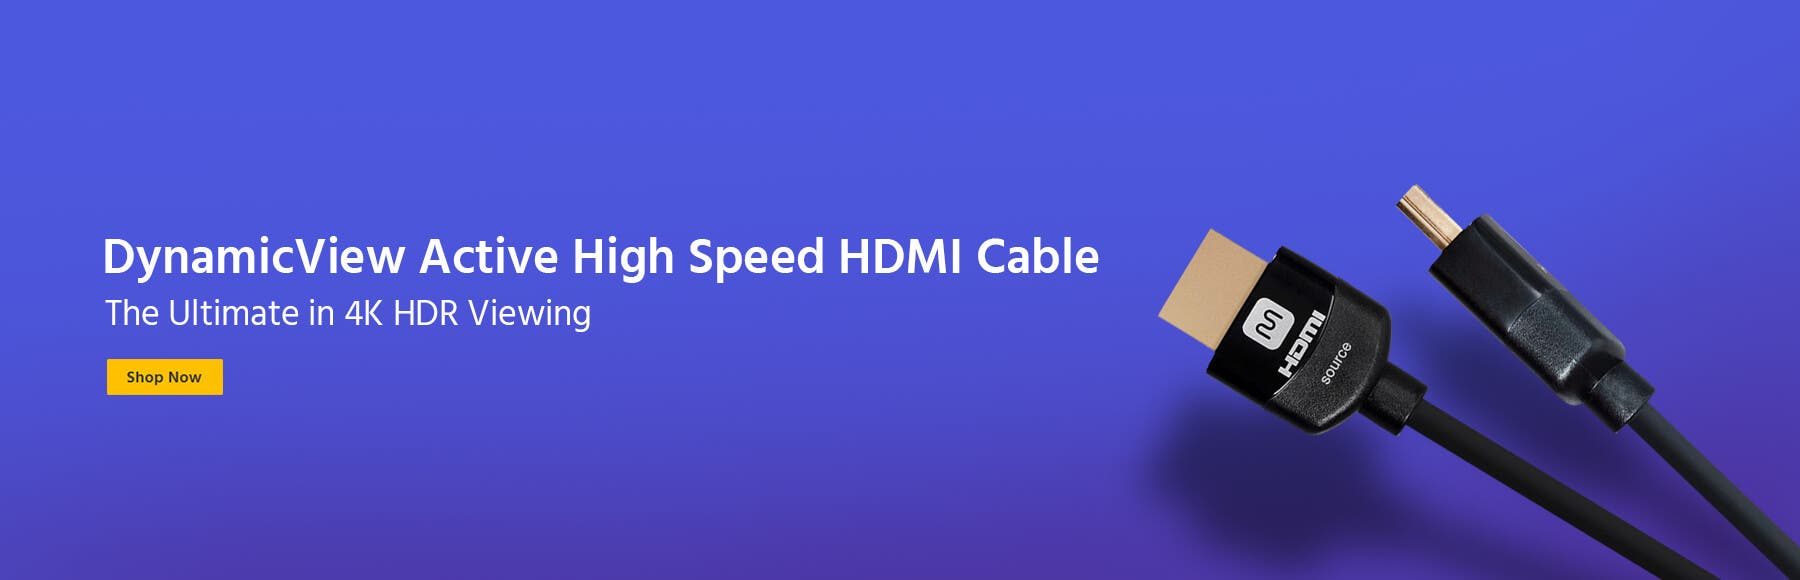 Dynamic View HDMI